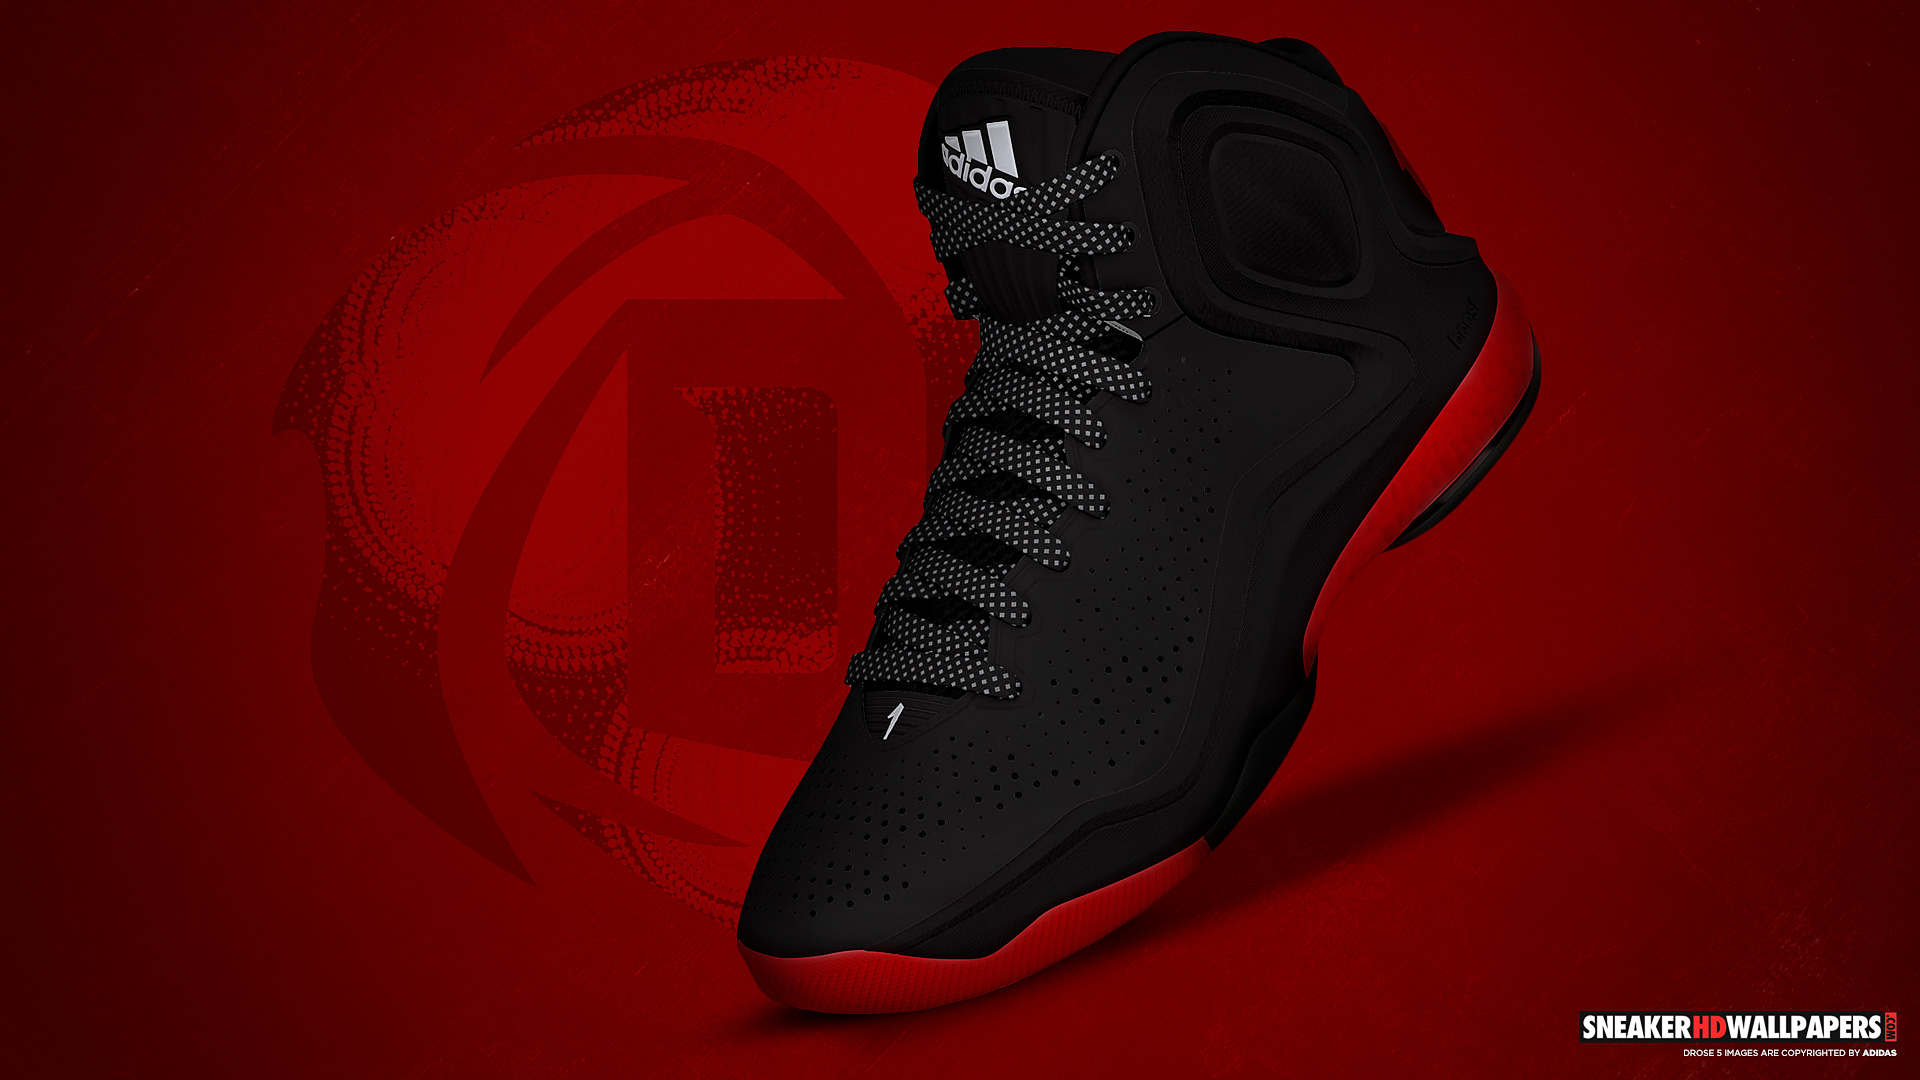 Nike Quotes Wallpaper Hd Basketball Sneakerhdwallpapers Com Your Favorite Sneakers In Hd And